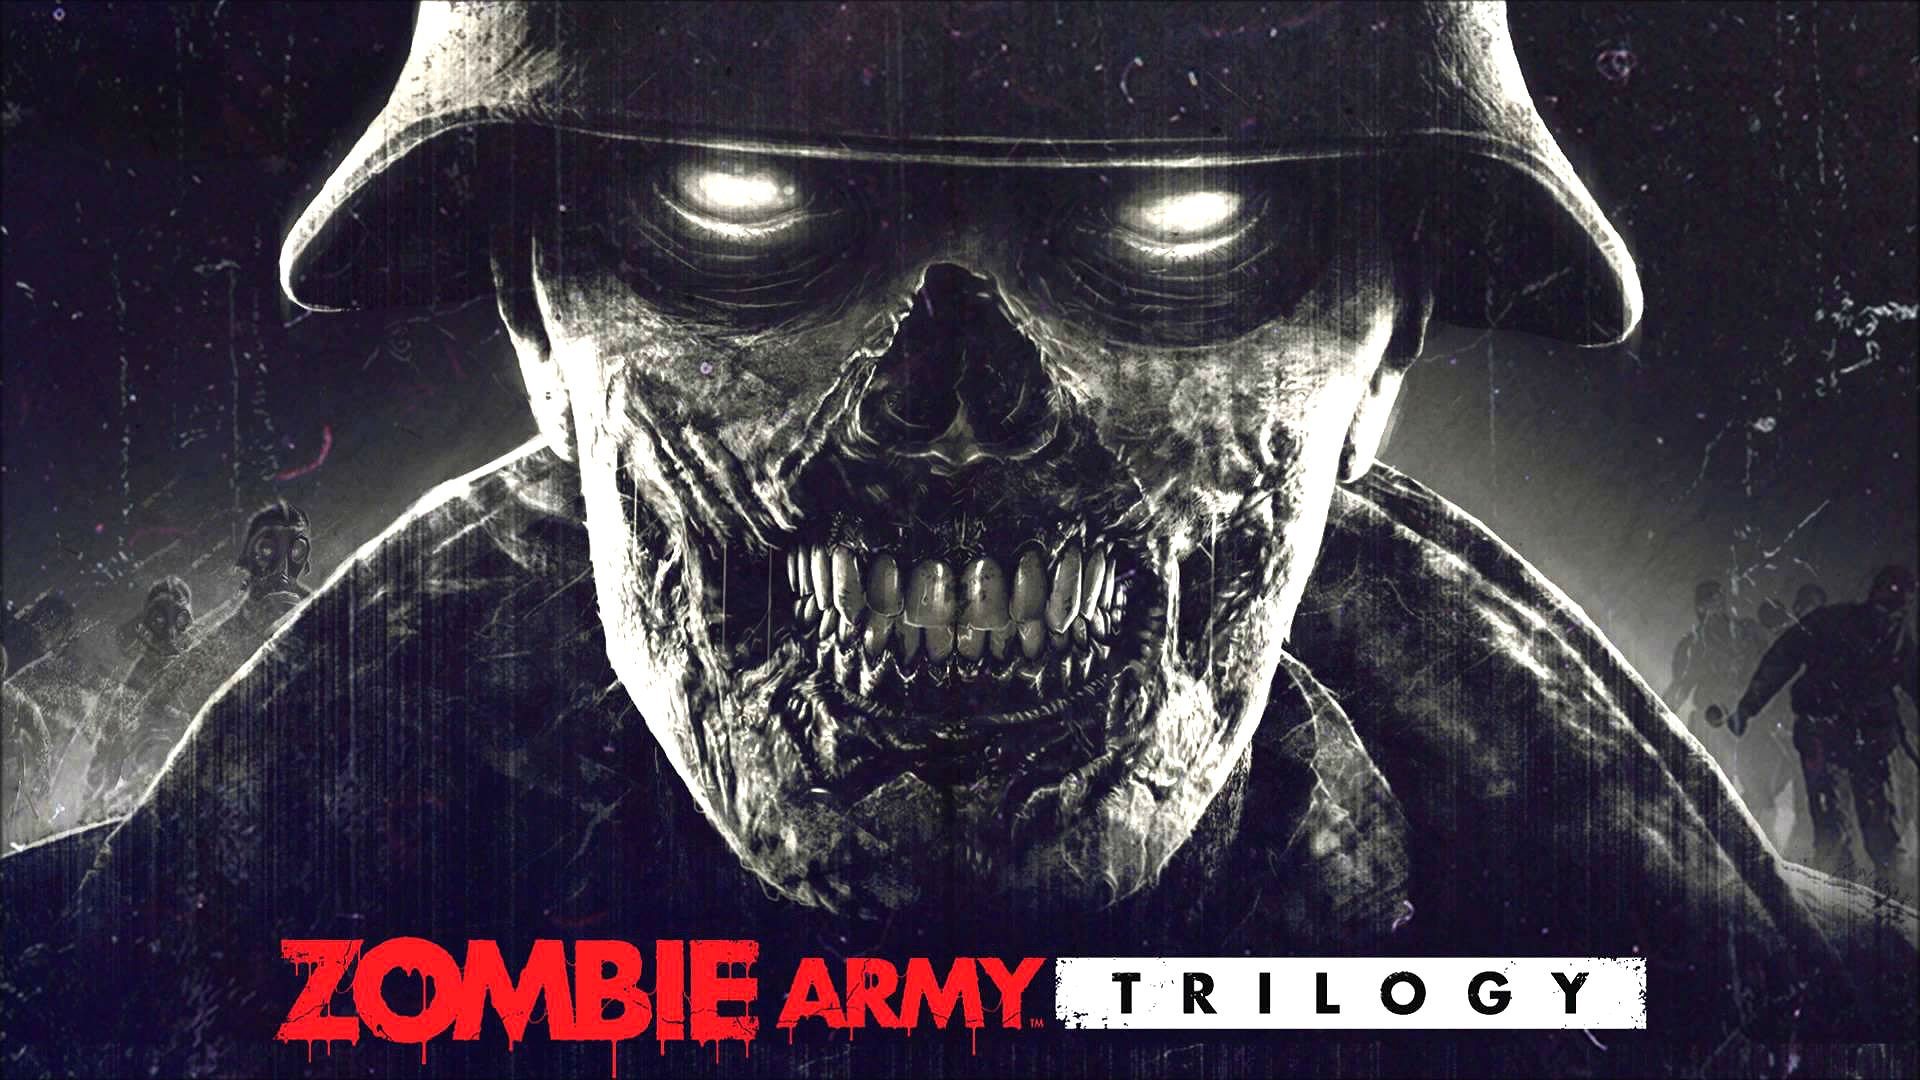 NAZI ZOMBIE ARMY TRILOGY survival horror shooter dark action 1920x1080